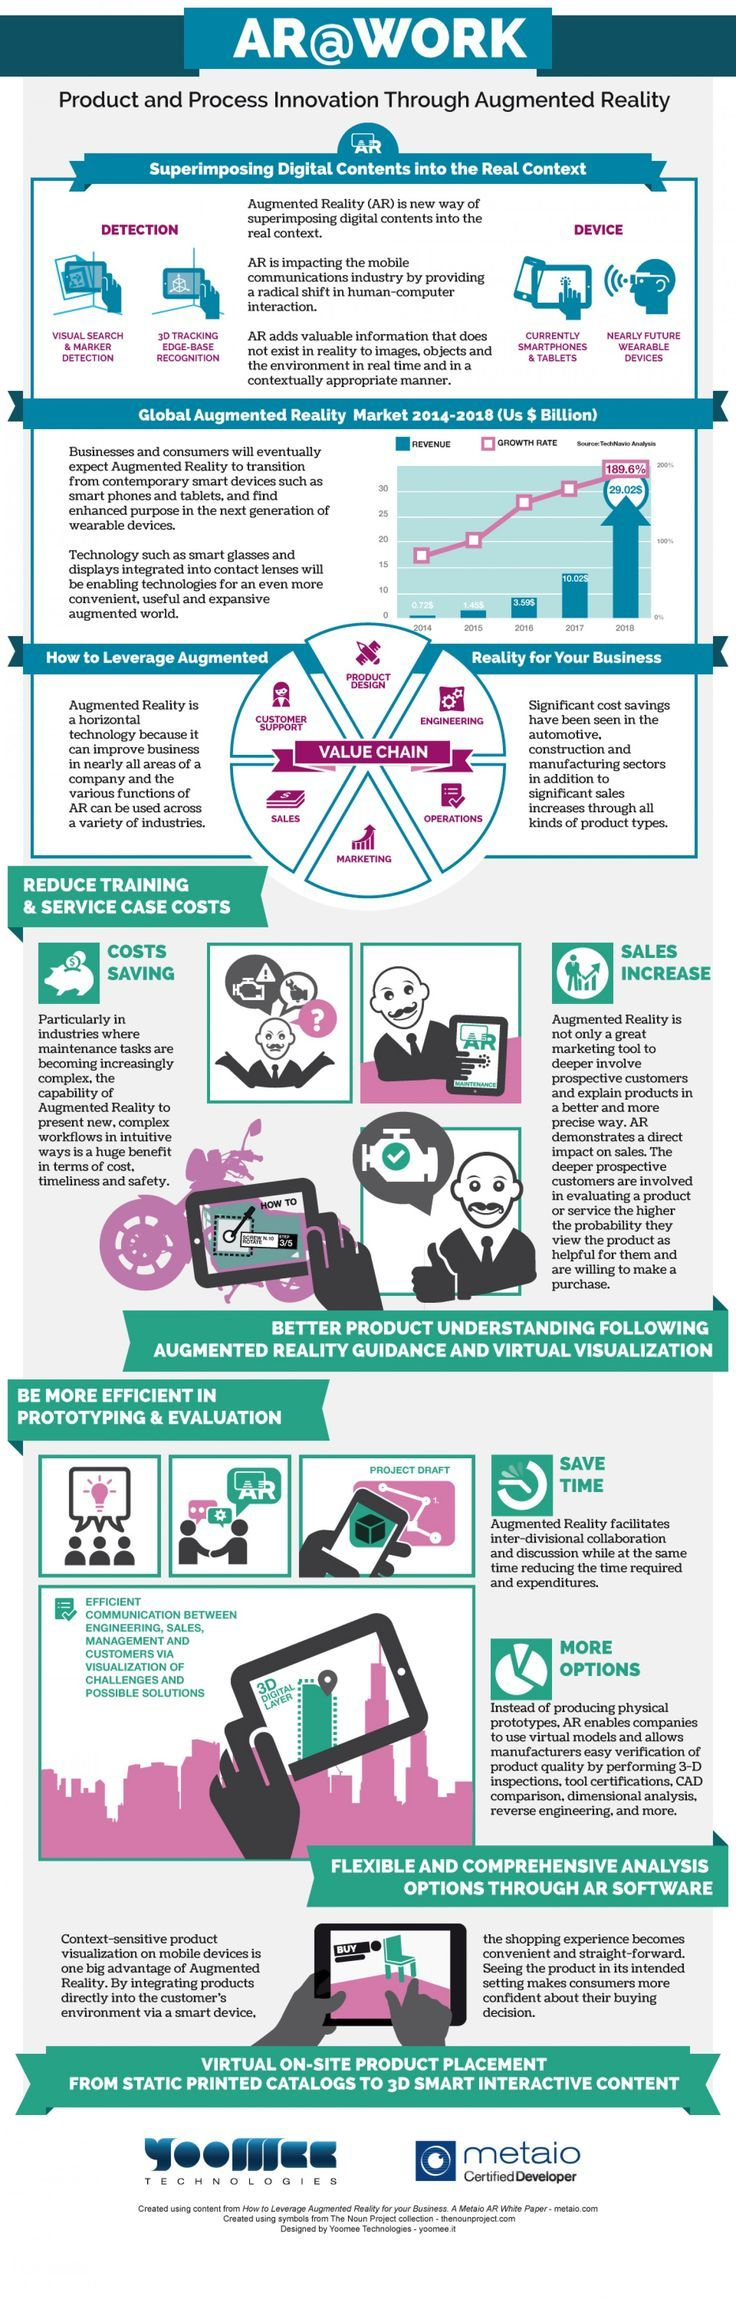 #VR #VRGames #Drone #Gaming AUGMENTED REALITY AT WORK Infographic augmented, Infographic, reality, VR Pics, work #Augmented #Infographic #Reality #VRPics #Work https://datacracy.com/augmented-reality-at-work-infographic/